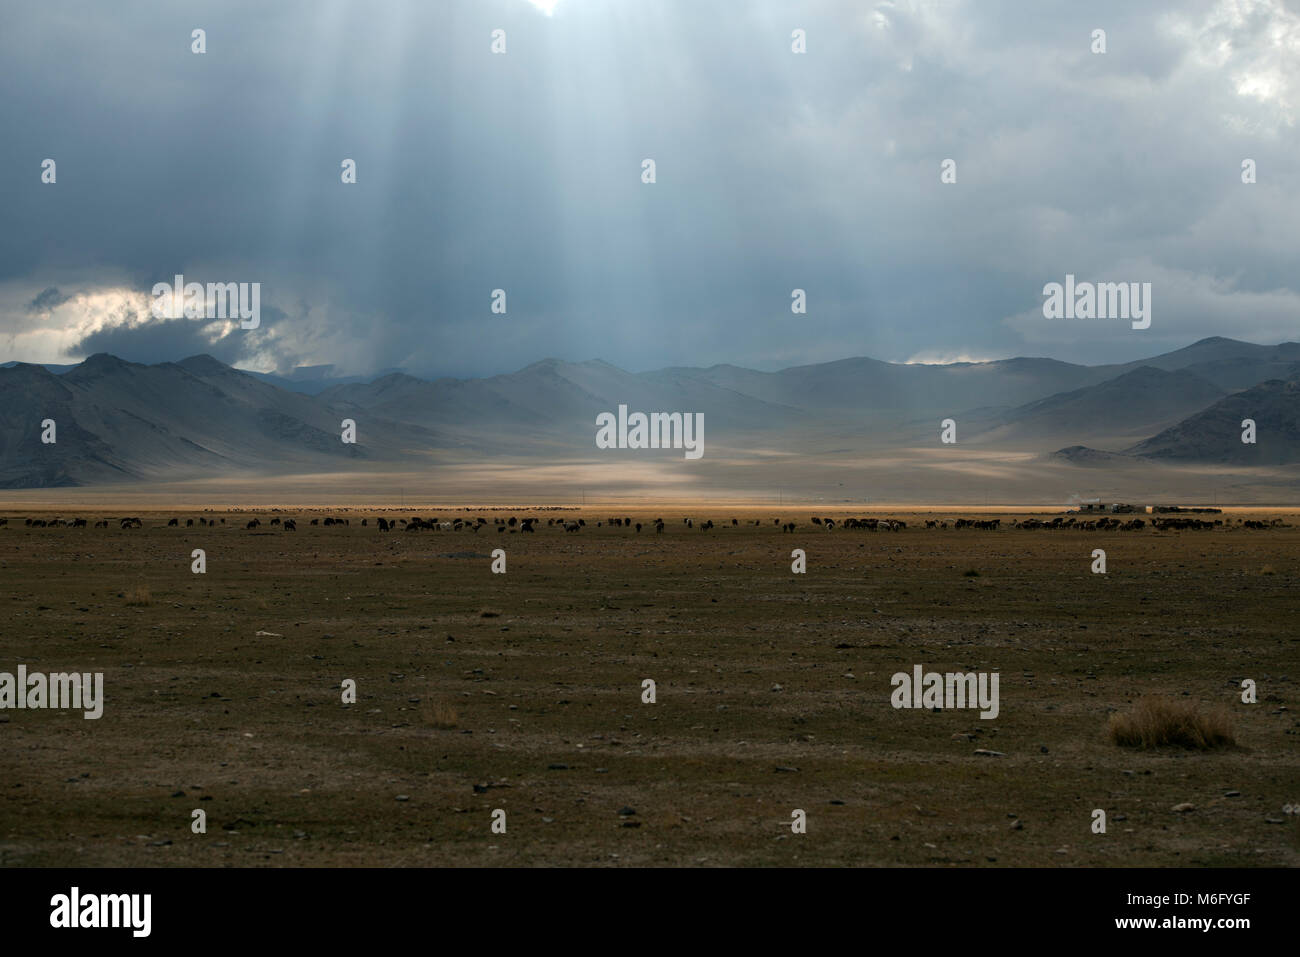 Cattle grazing in the Altai Mountains, Mongolia as rays of sunlight break through the clouds. It is the most sparsely - Stock Image